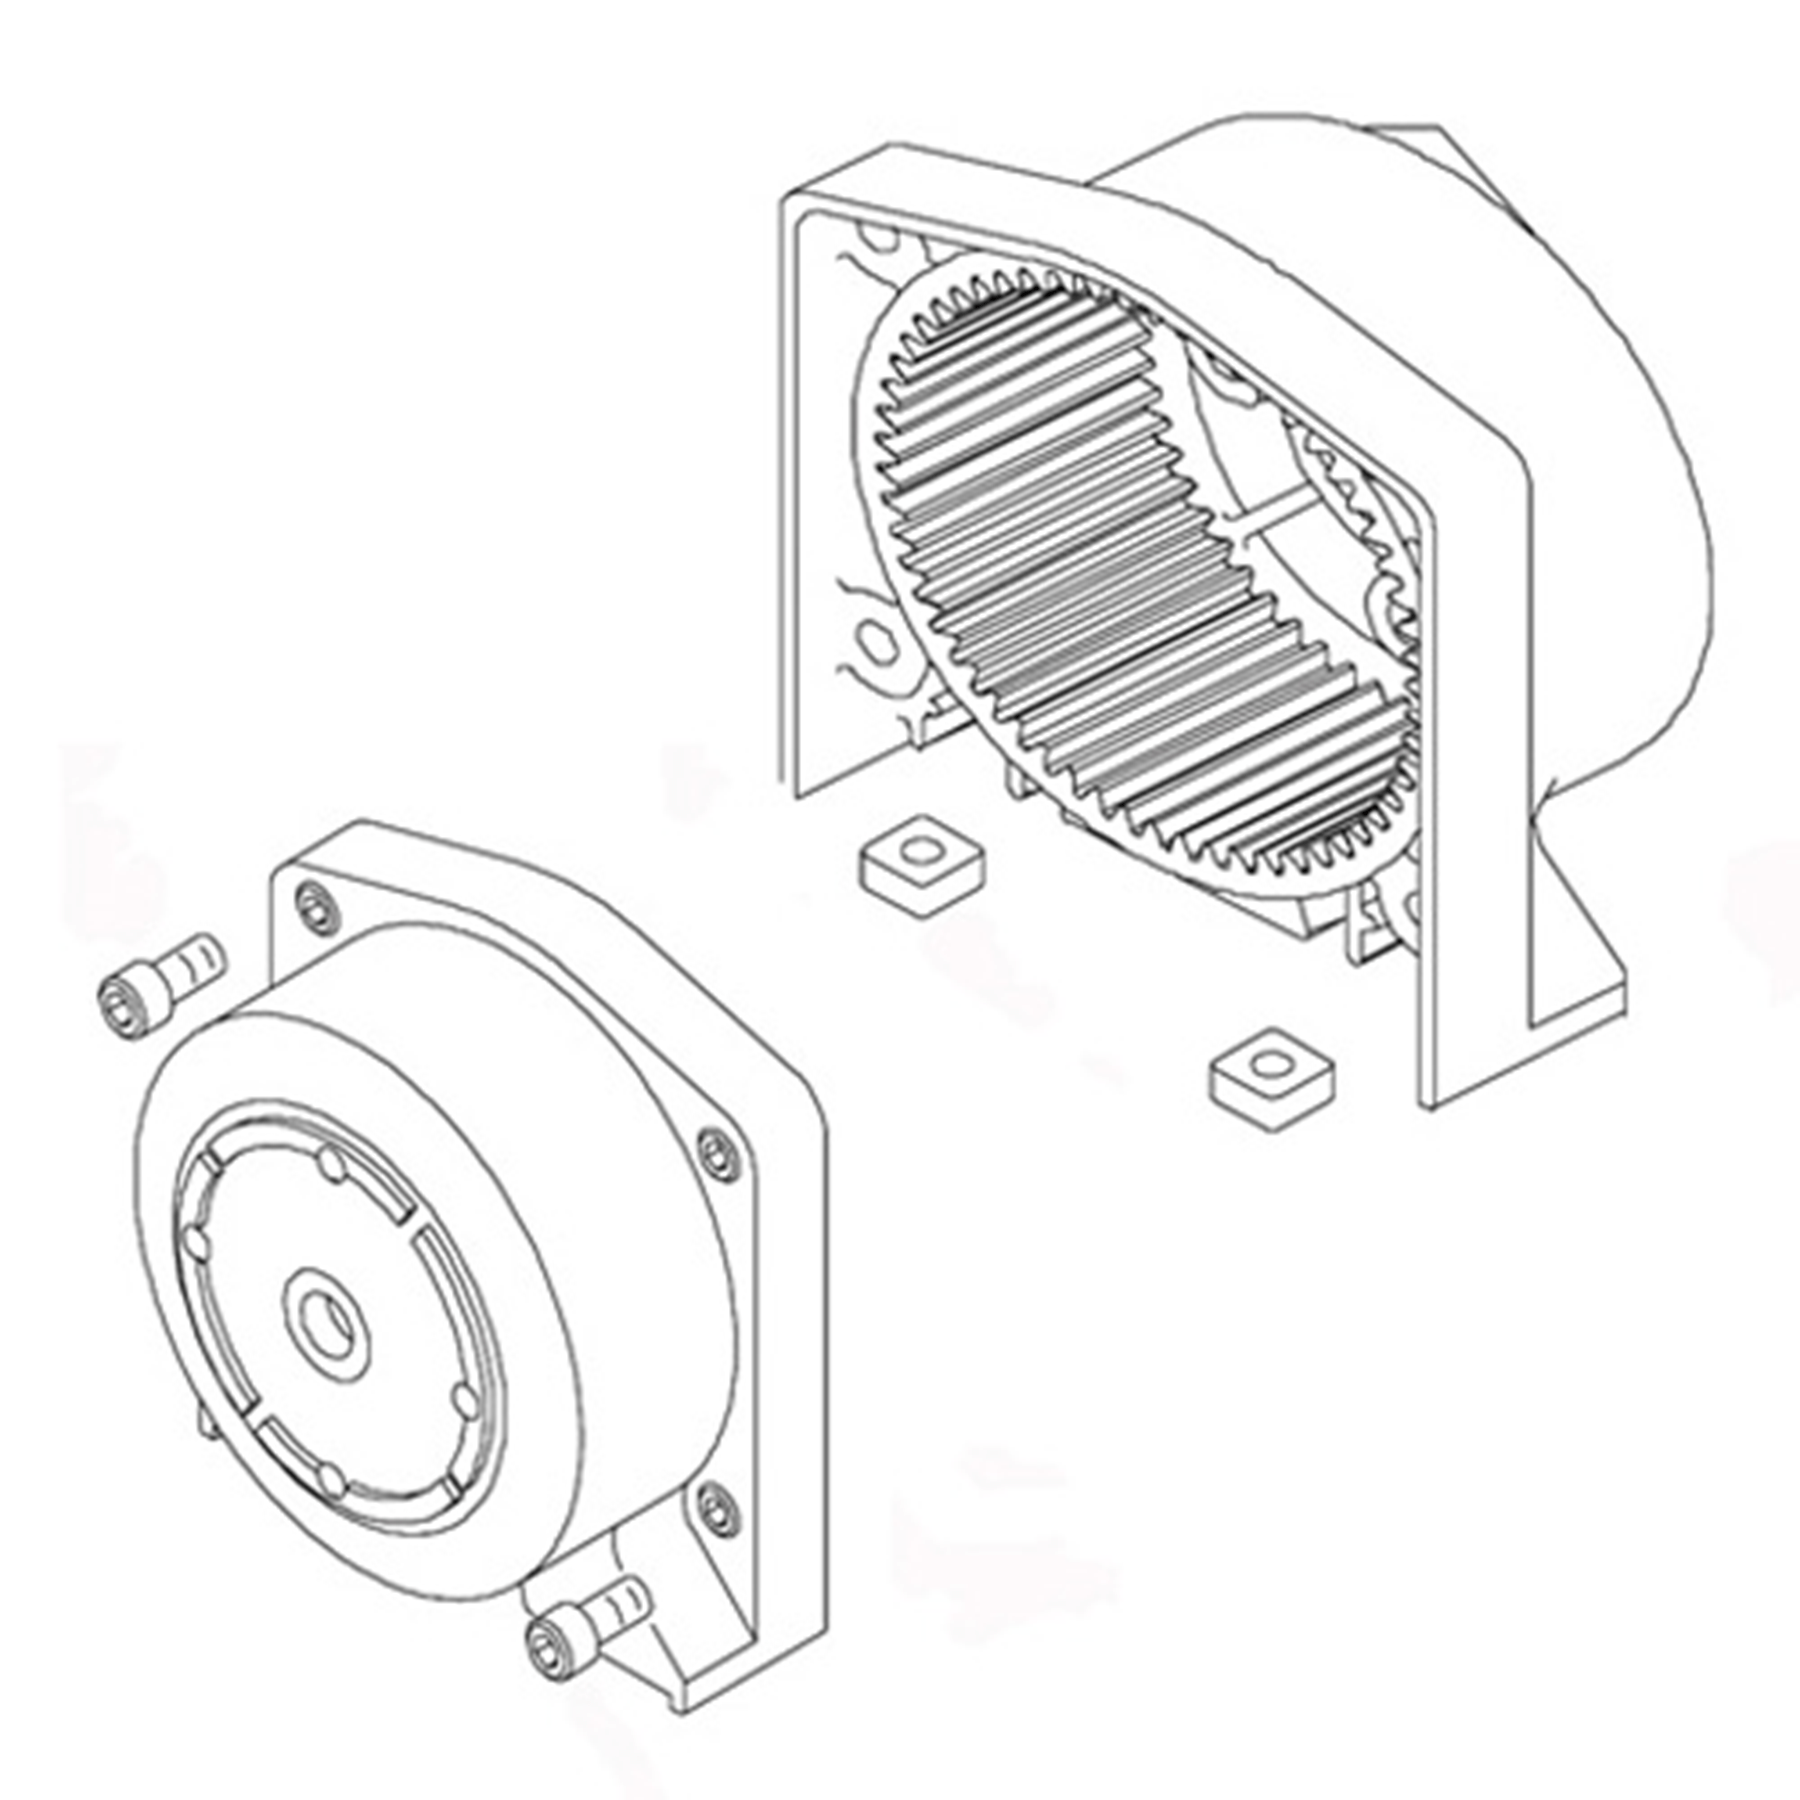 Repl End Housing Amp Clutch Assembly For Winch Pair